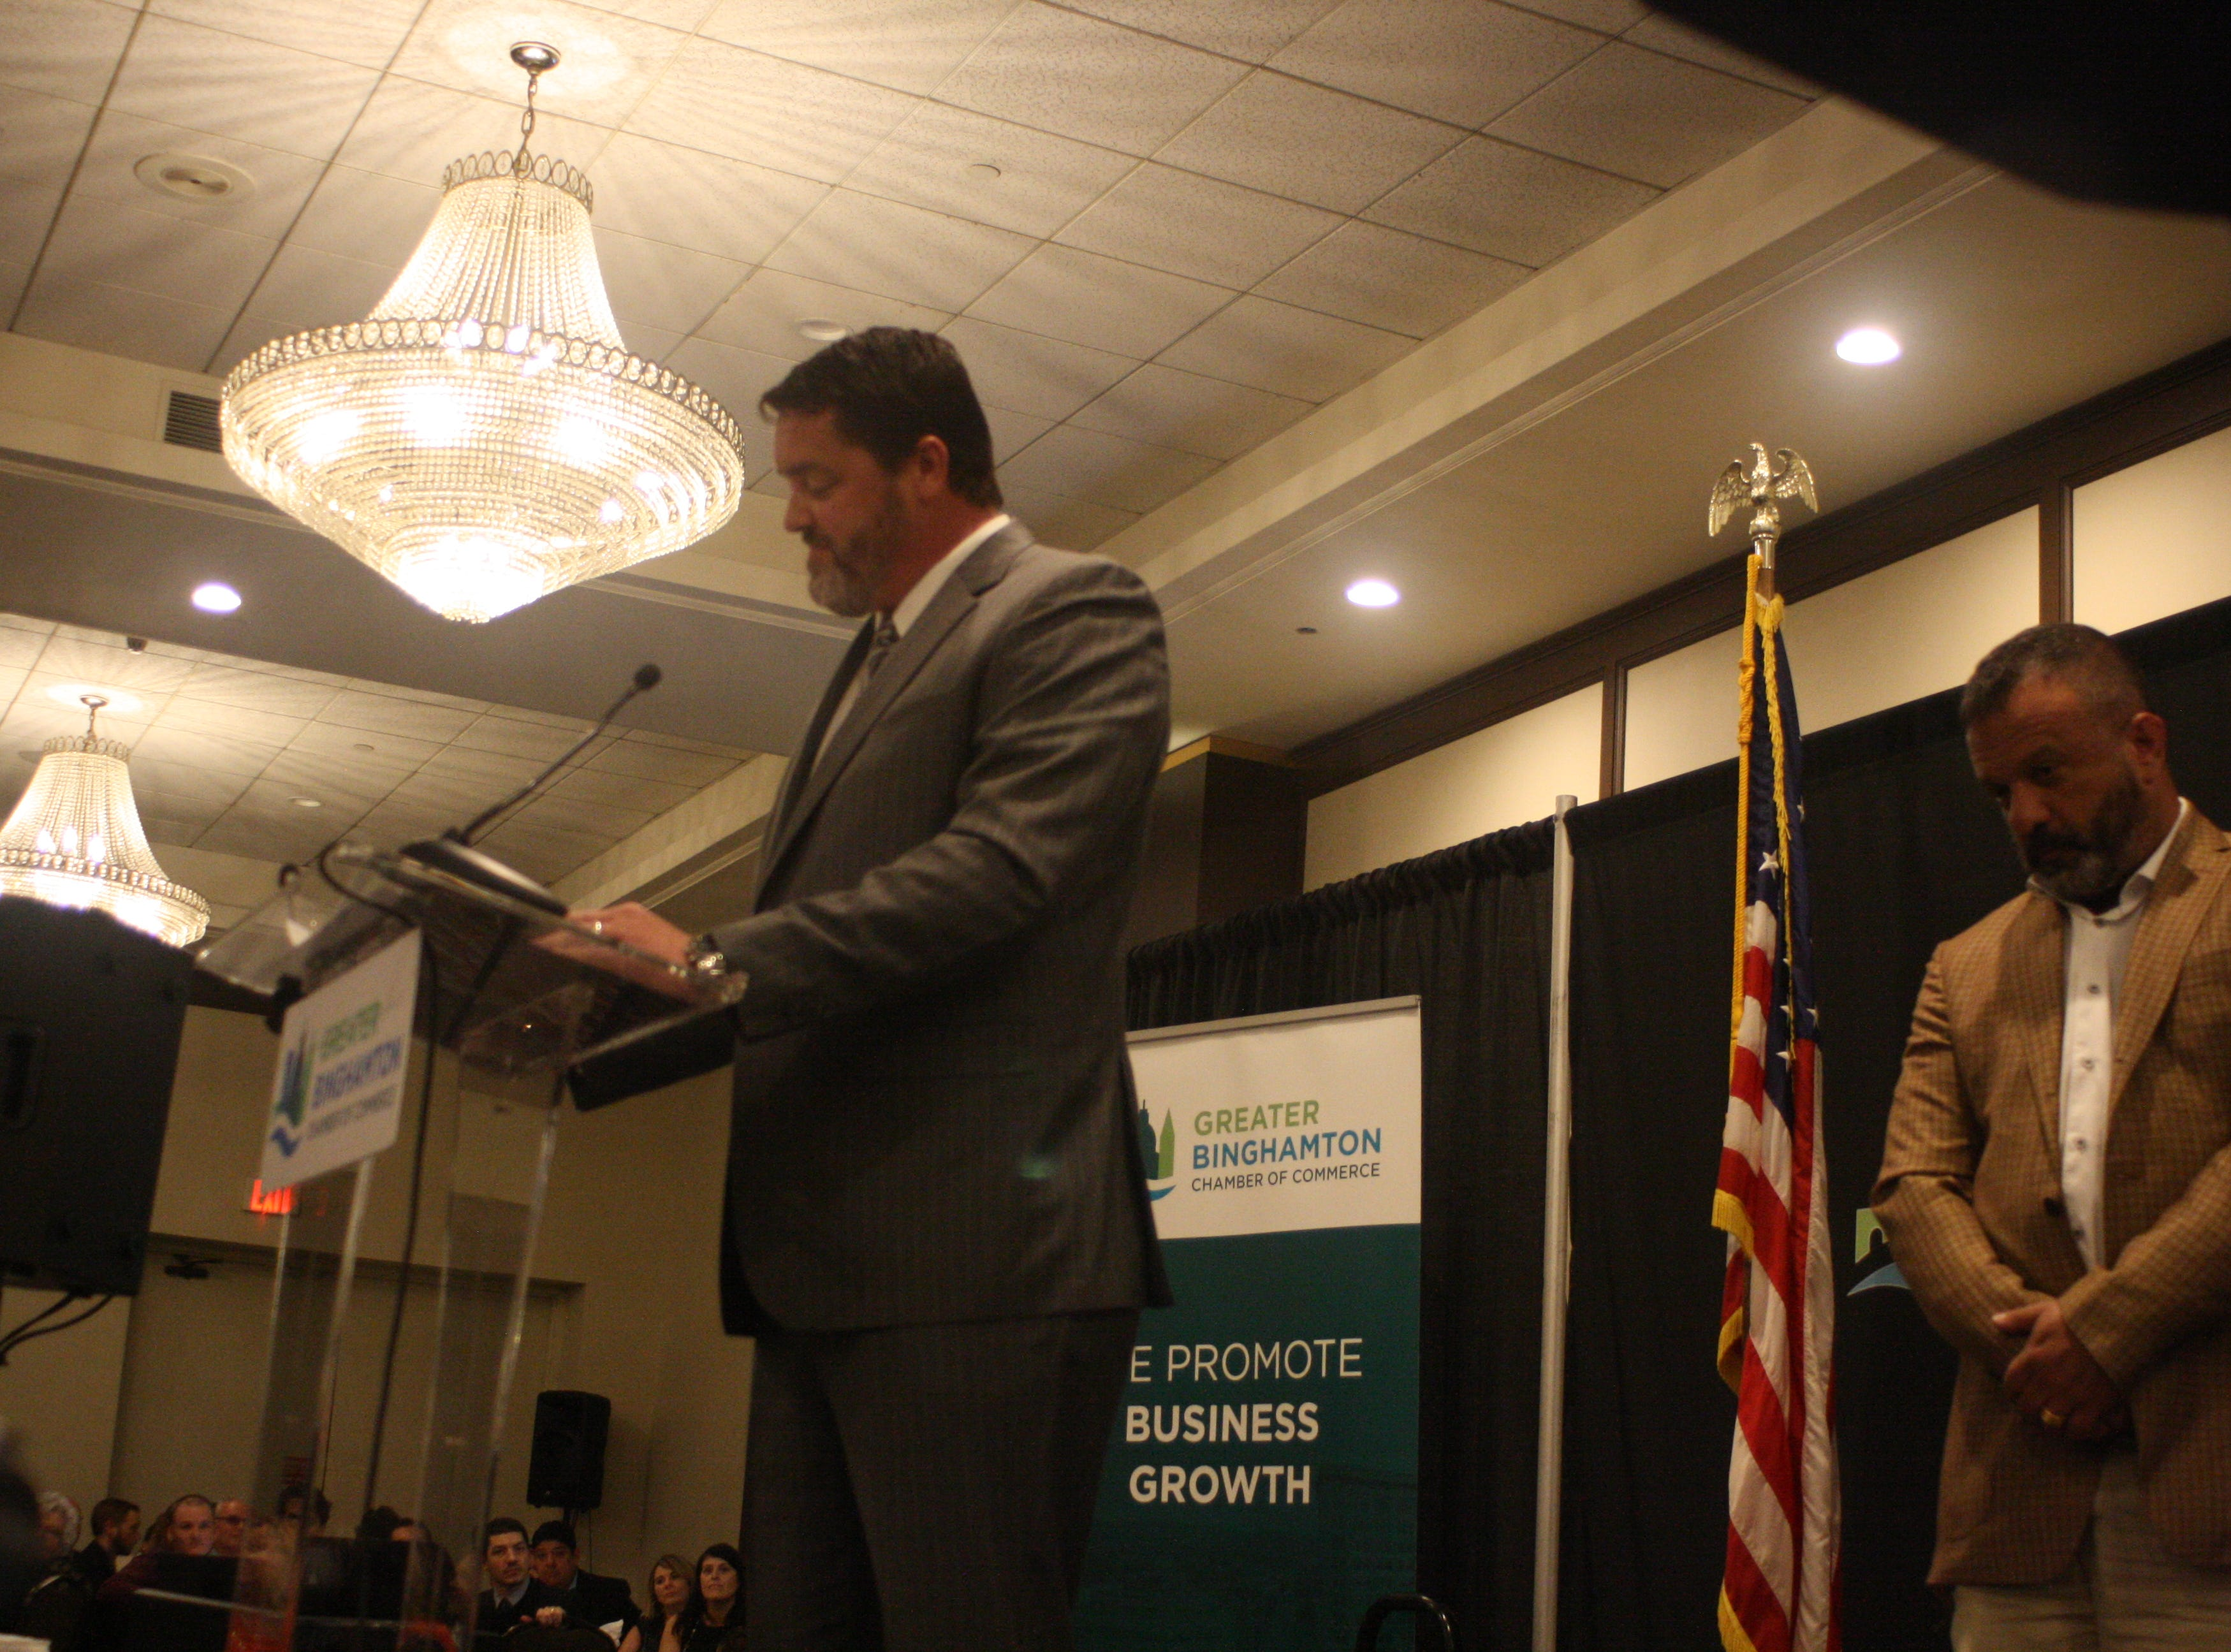 The Greater Binghamton Chamber of Commerce held its annual dinner and meeting Tuesday evening at the DoubleTree by Hilton in Downtown Binghamton.